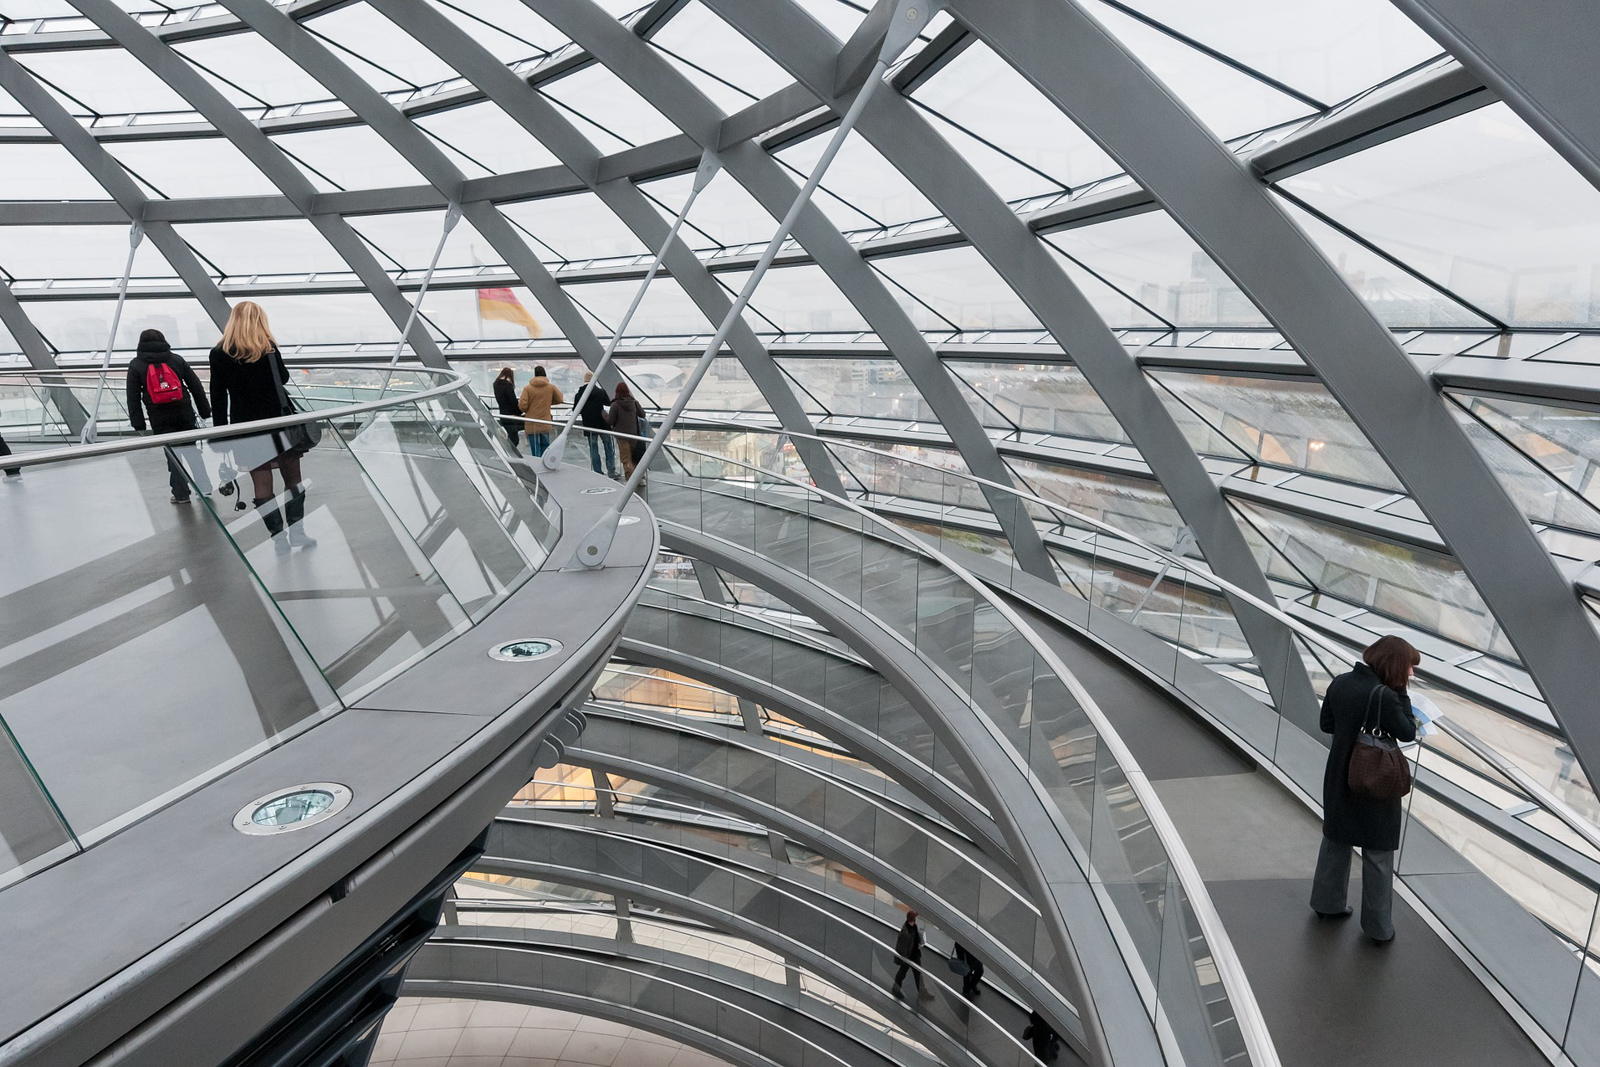 Top ten things to do in Berlin to see the Berlin Germany attractions in the reichstag building